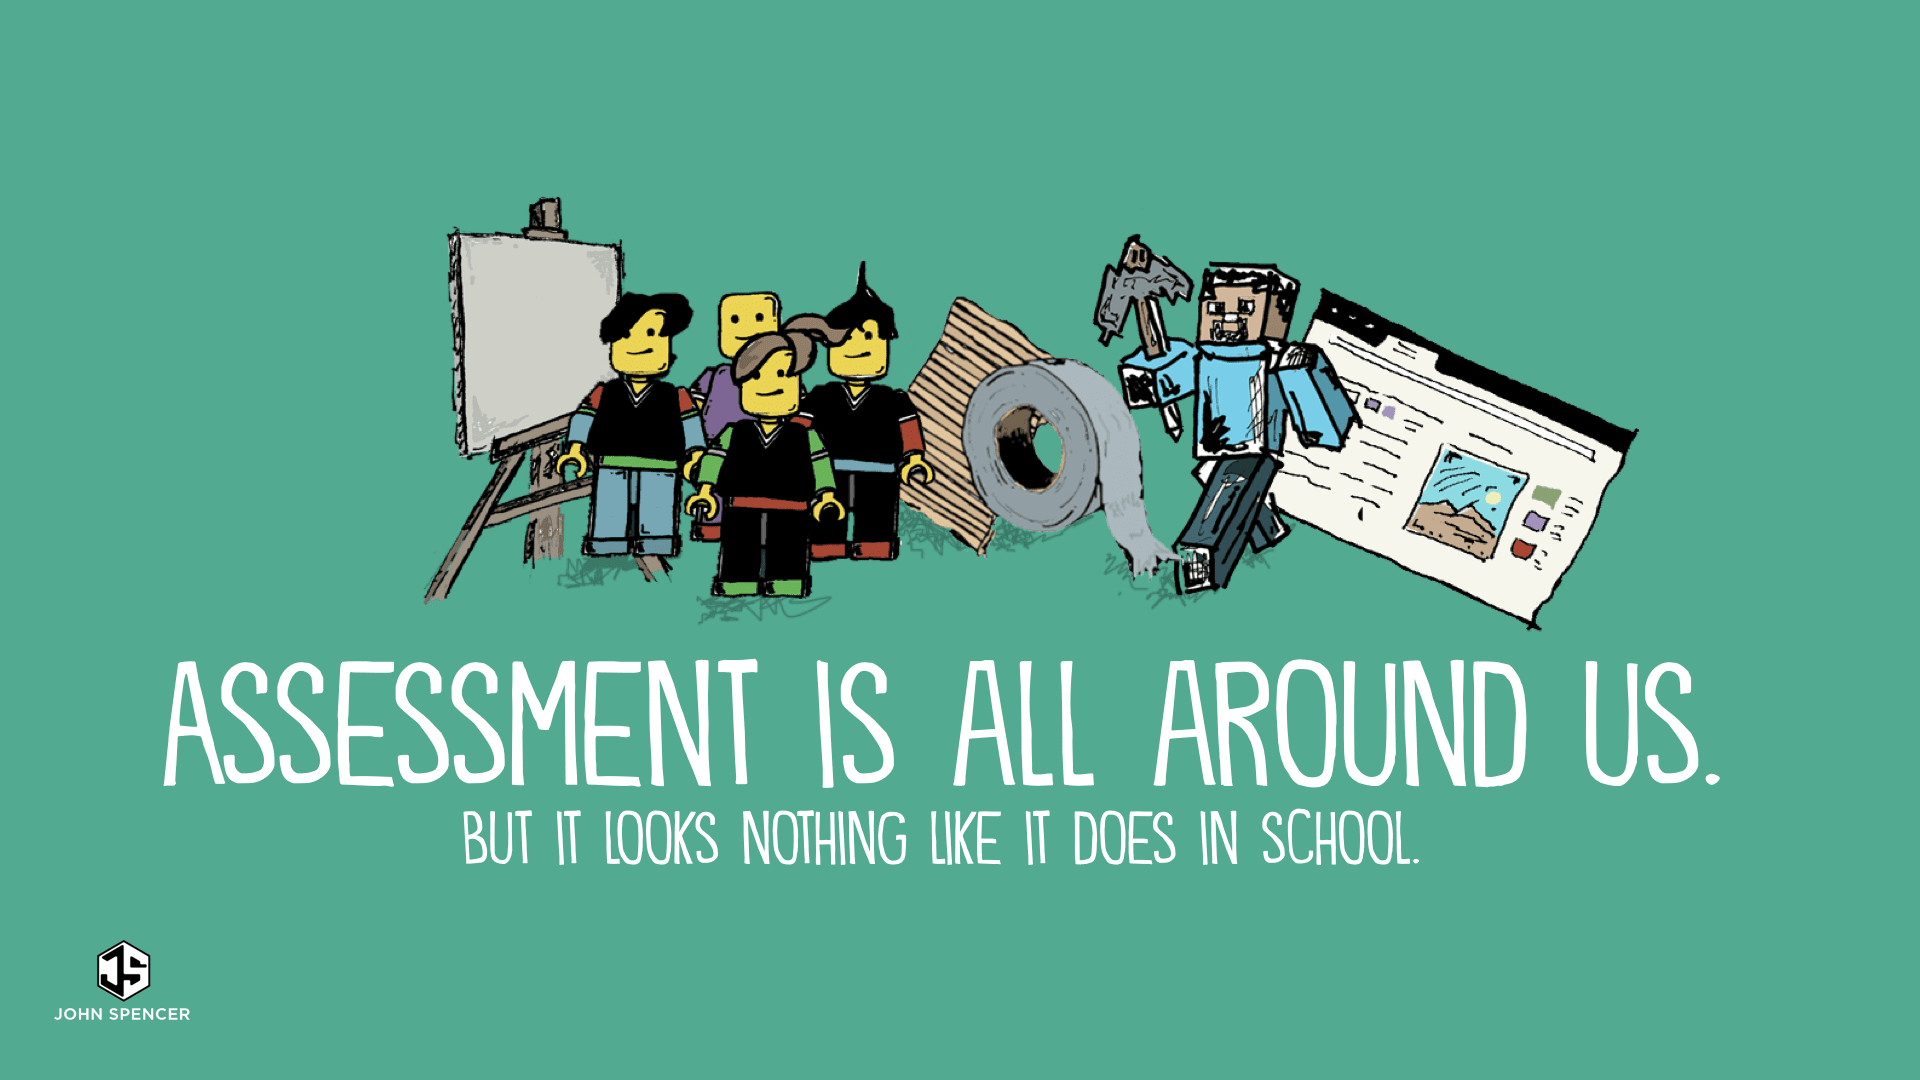 Assessment is all around us